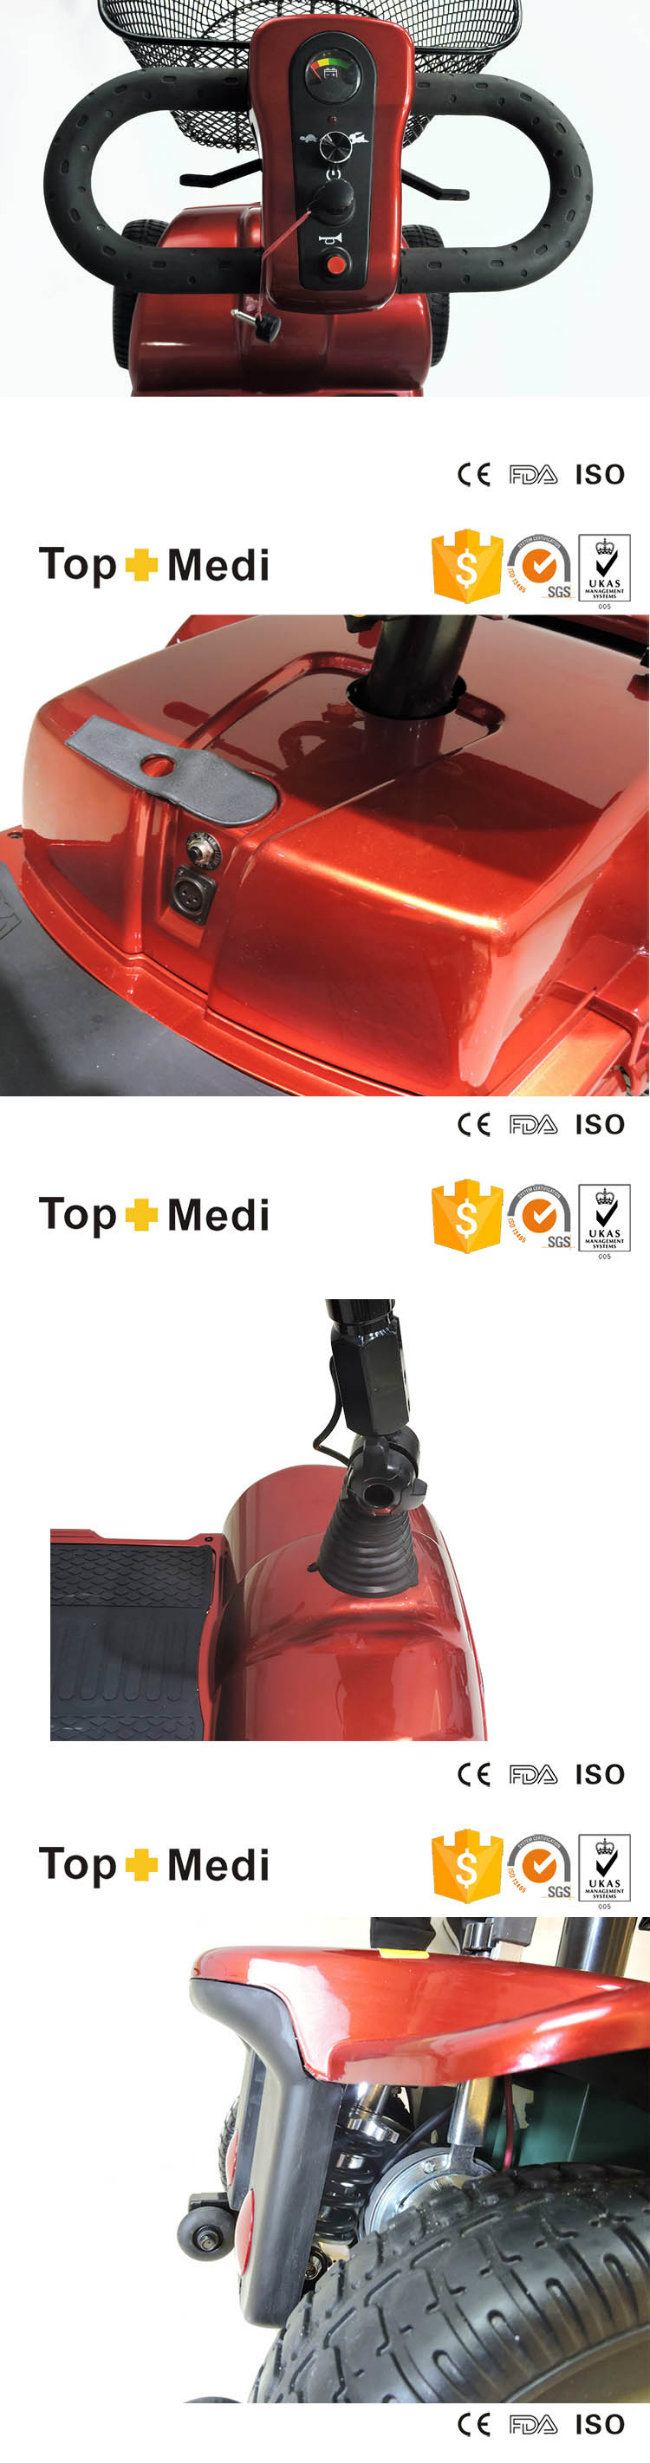 Topmedi Outdoor Electric Motorized Mobility Scooter Prices